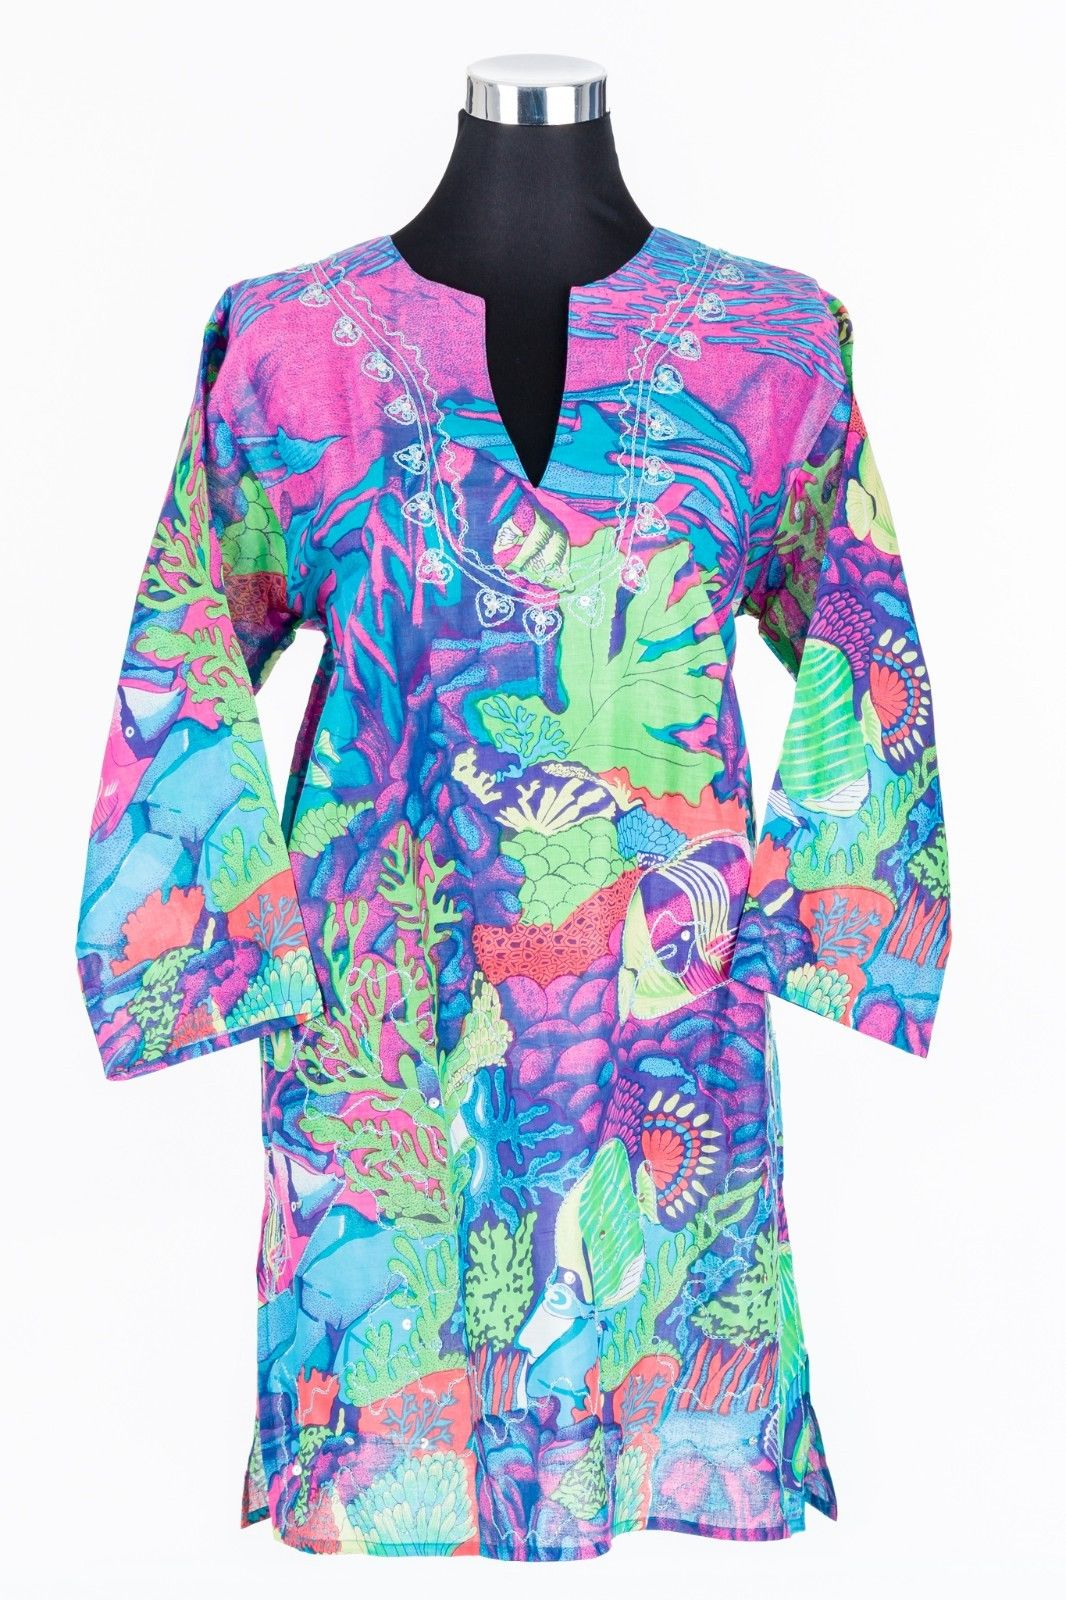 Great-Barrier-Reef-Cotton-Tunic-Kaftan-Top-Cotton-Sizes-10-22-PLUS-SIZE-382139641489